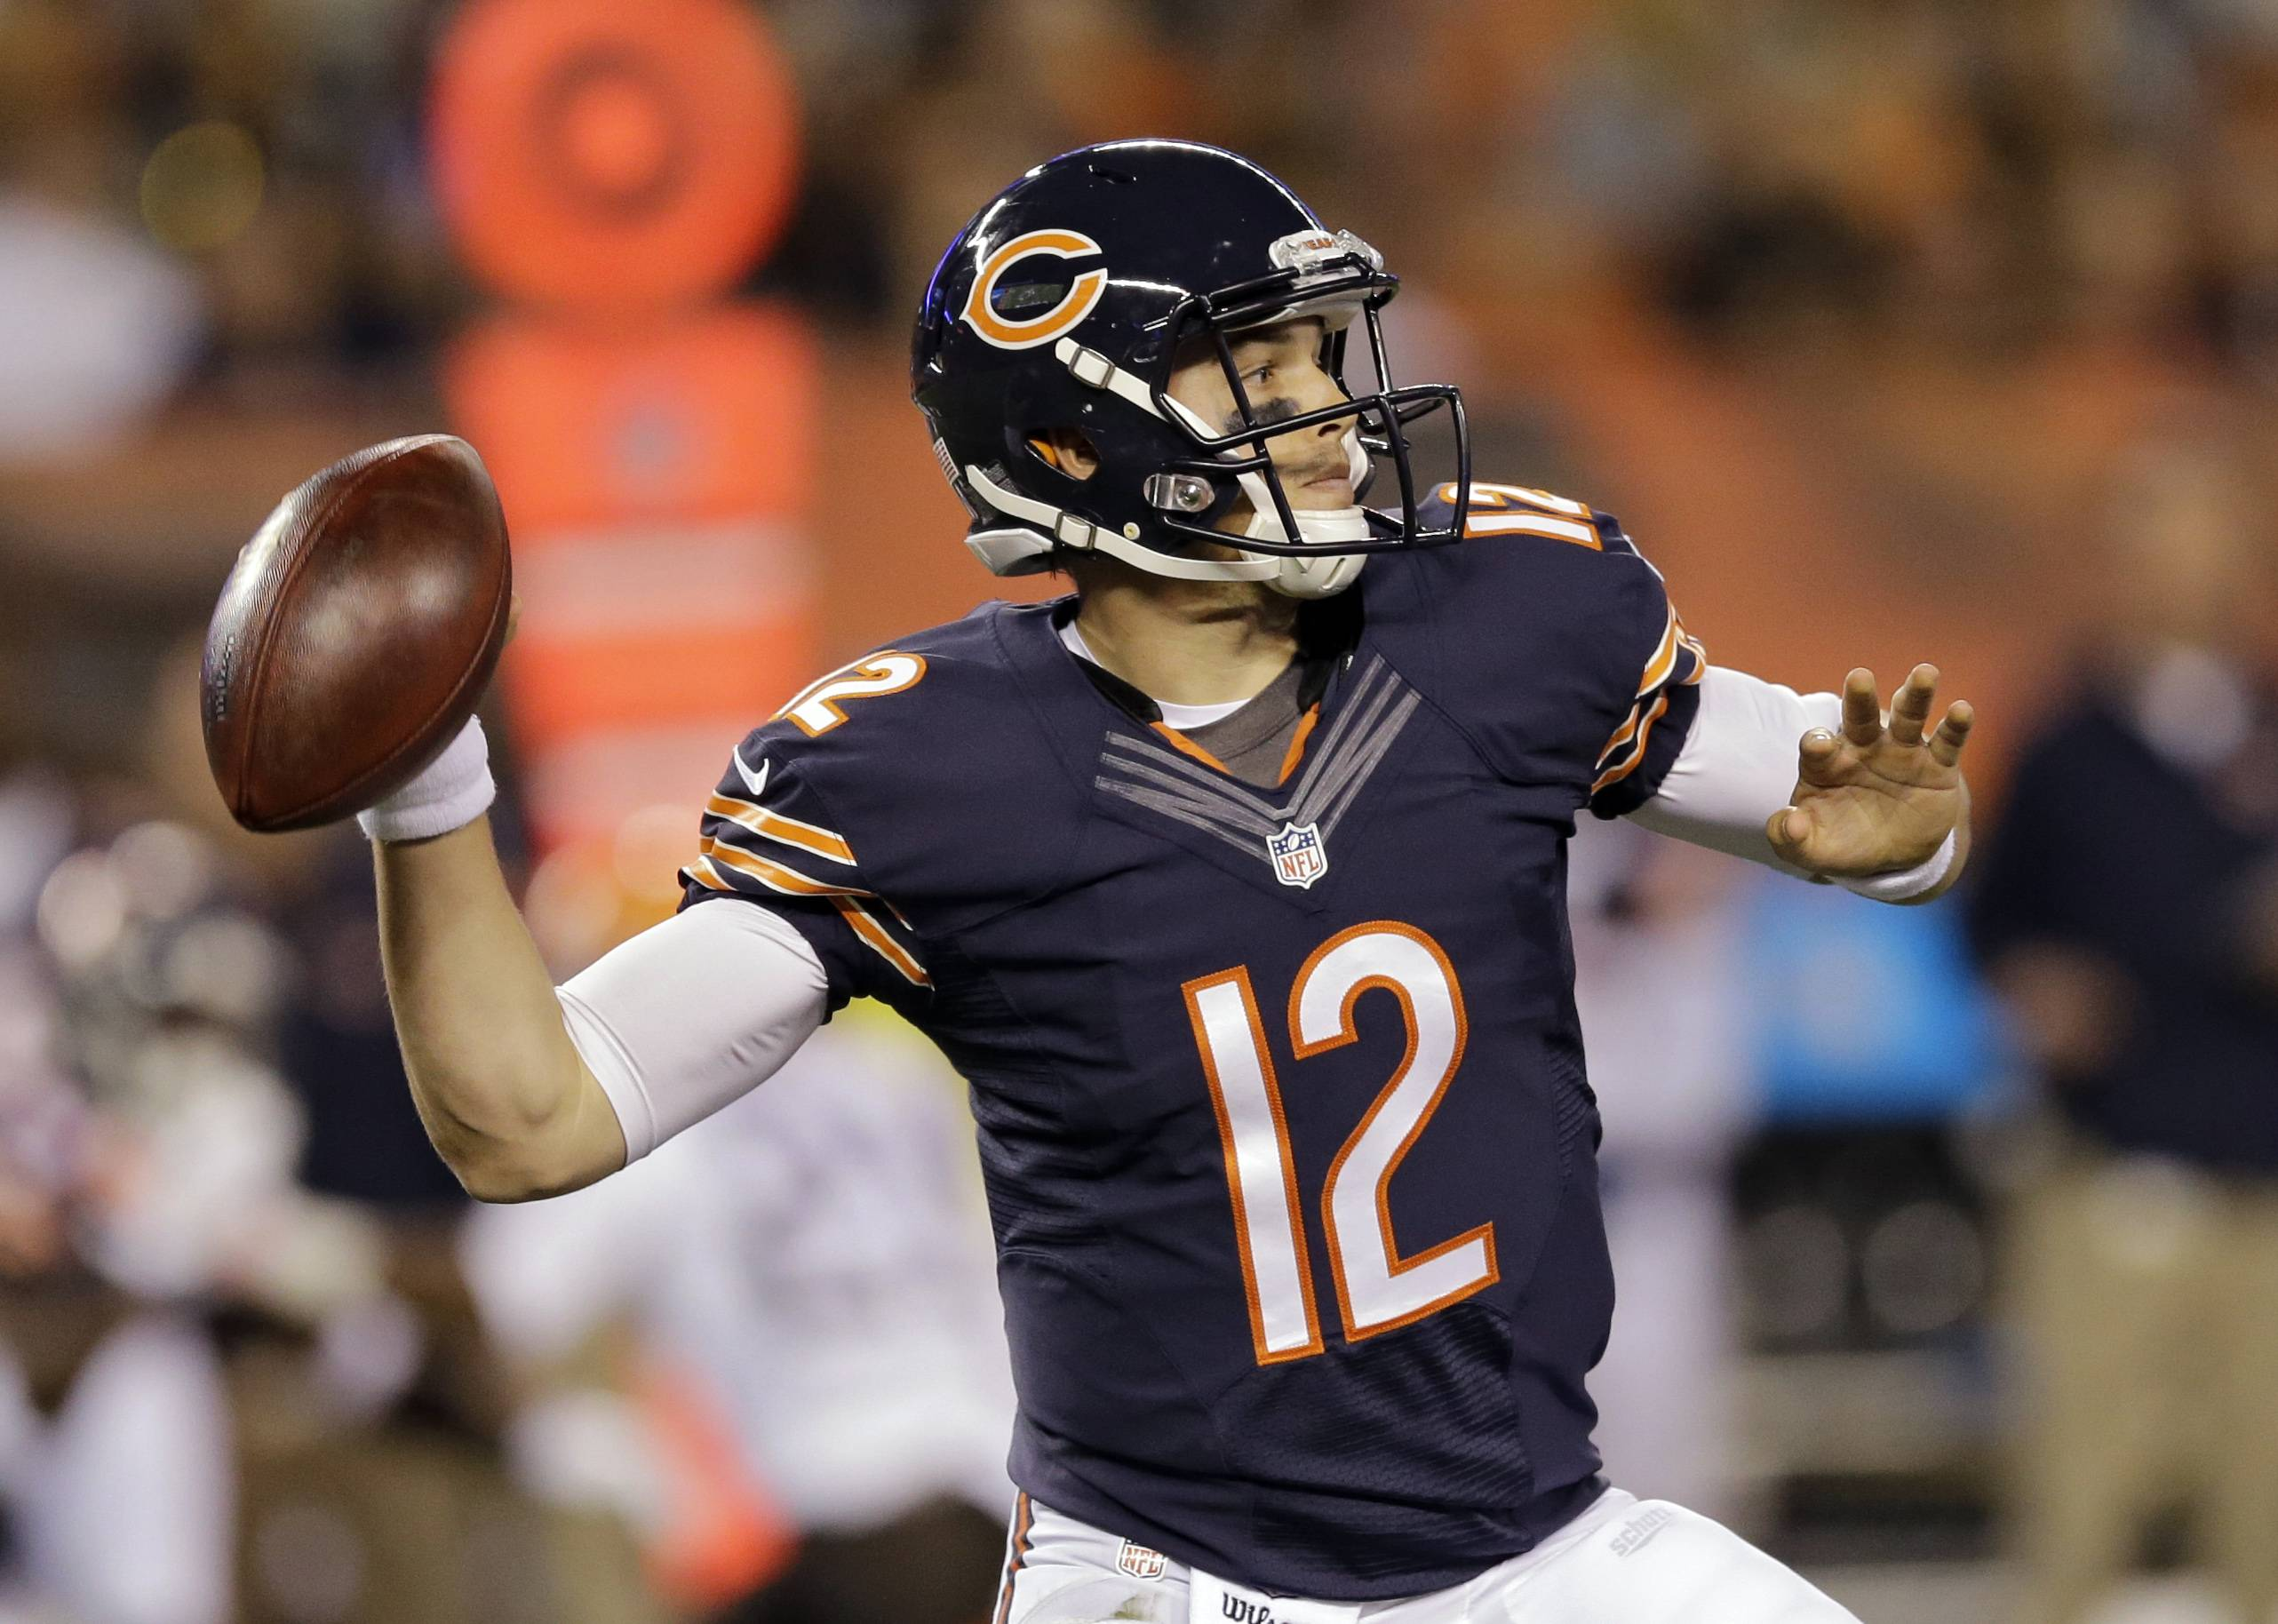 If the Bears are worried that another team would try to sign reserve quarterback David Fales, they may opt to keep him on their 53-man roster.